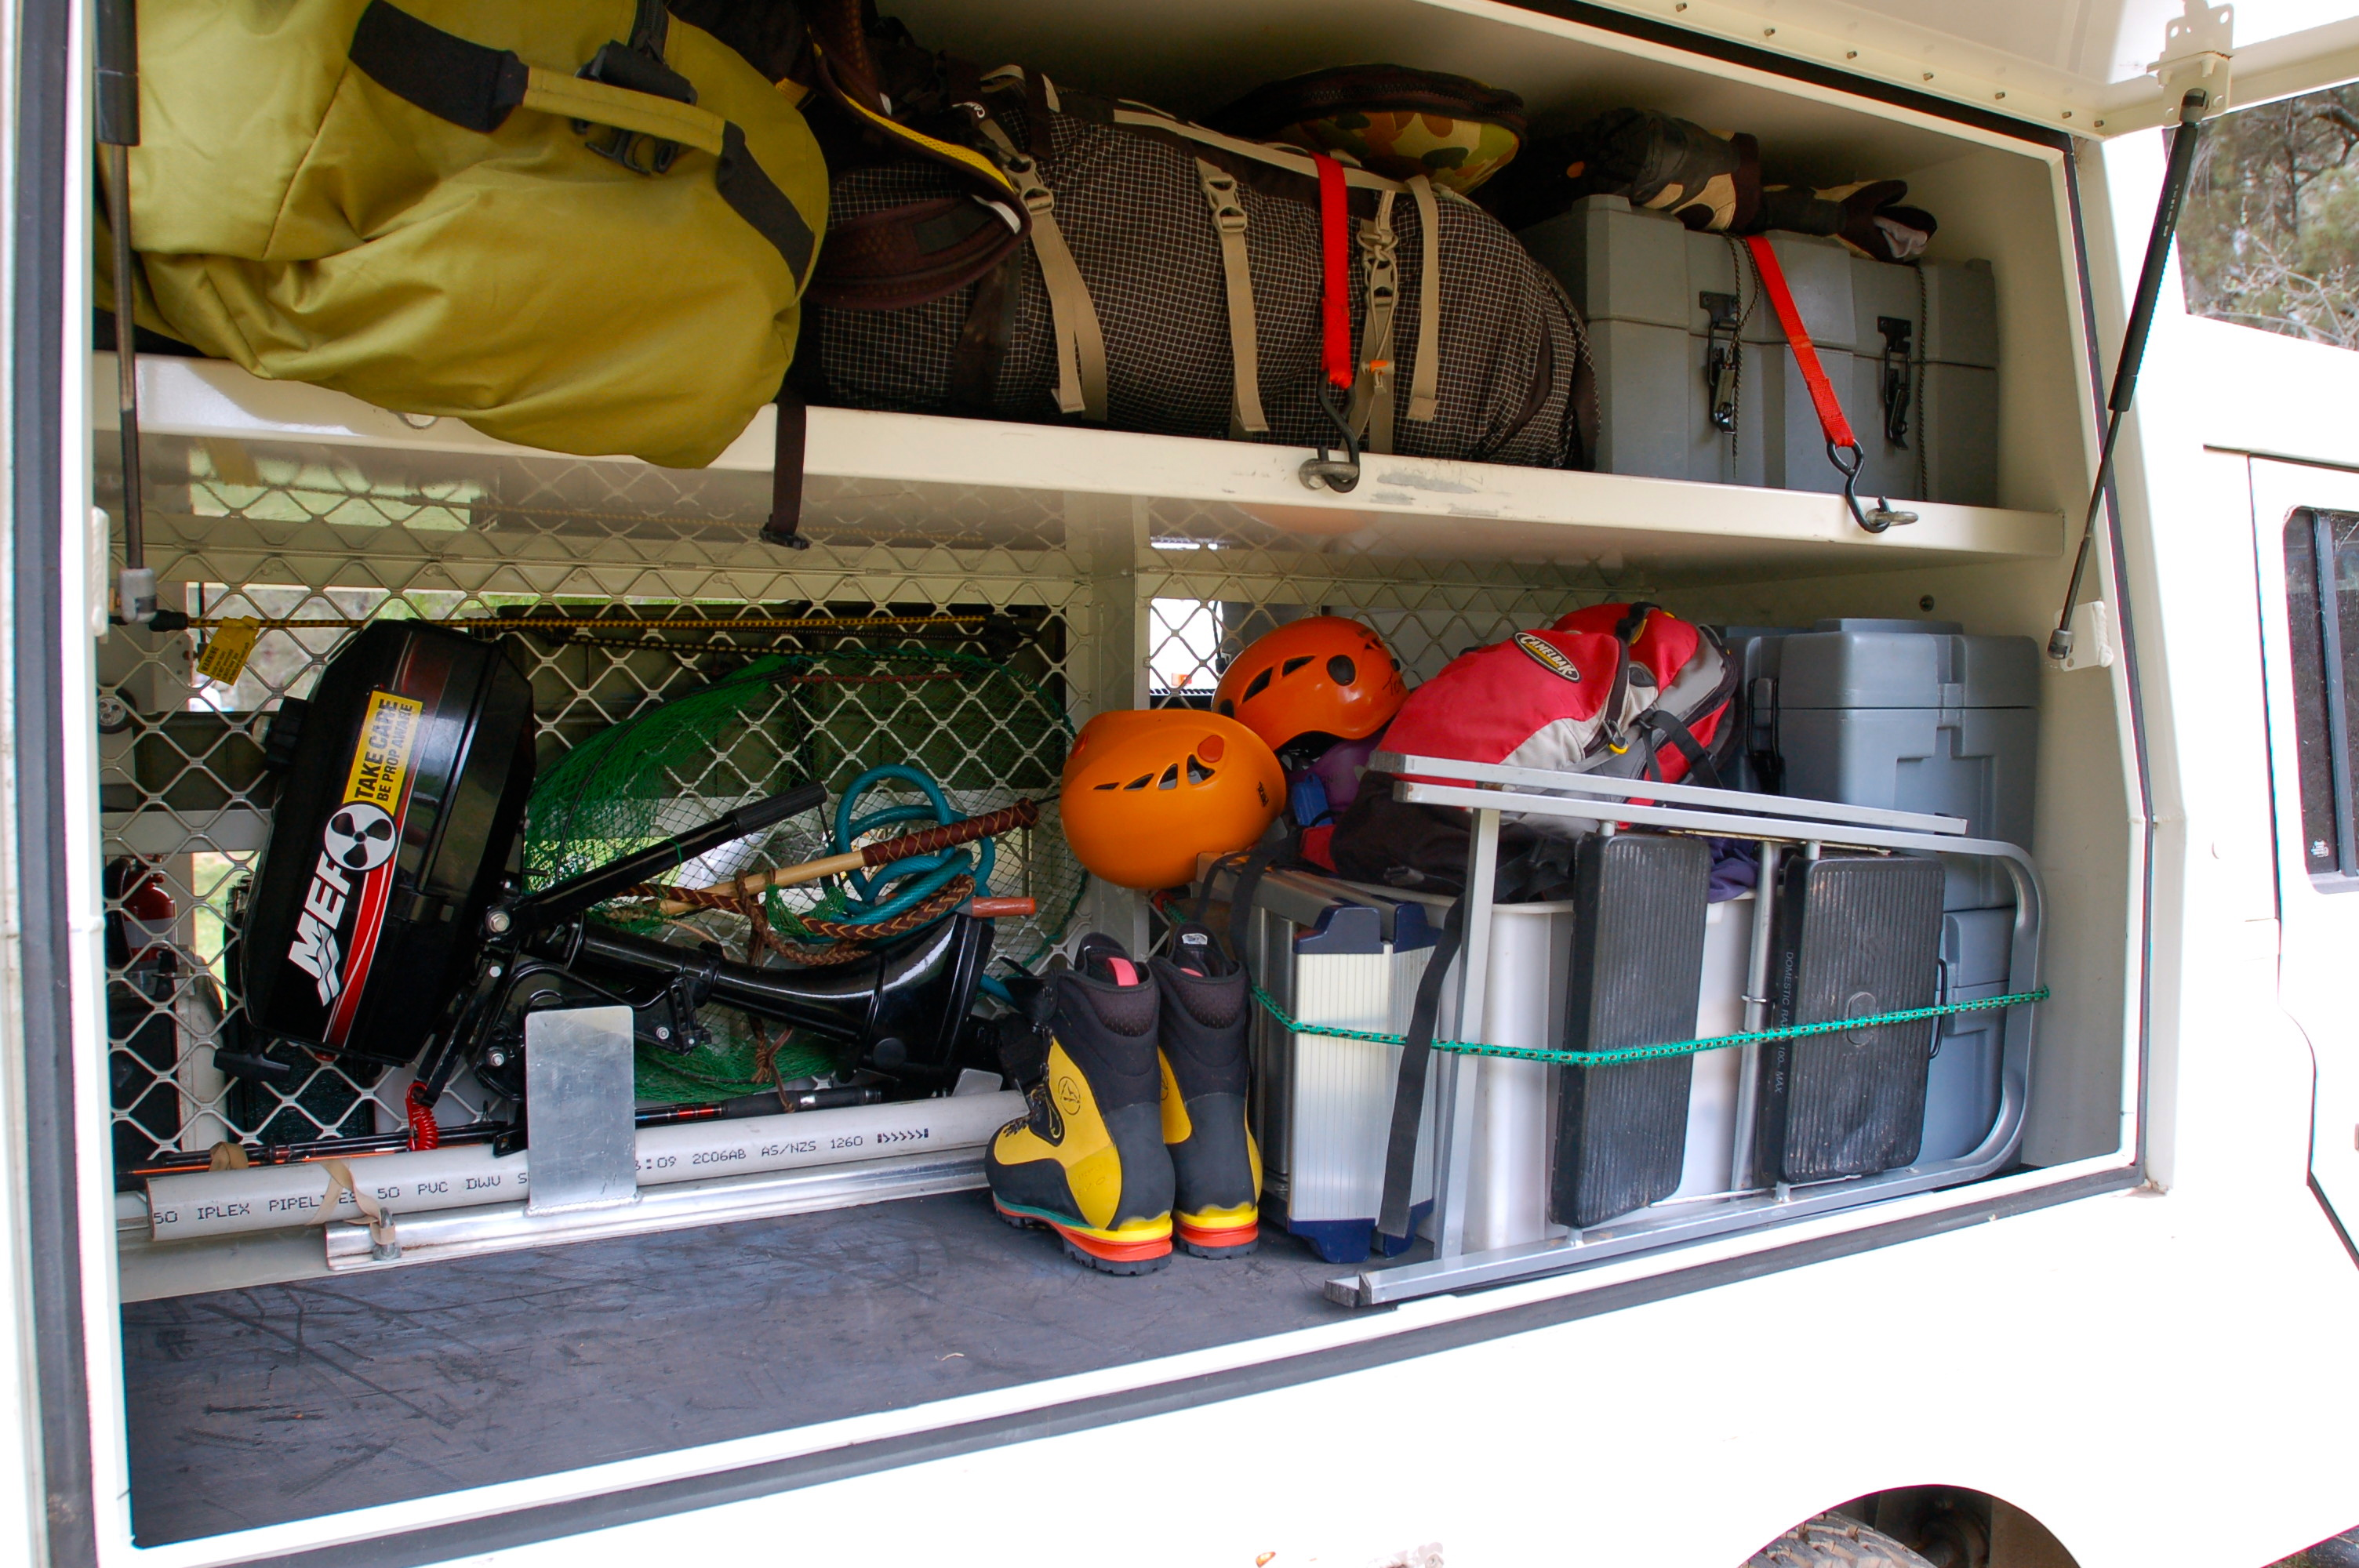 The Landy - packed full of Janet's stuff toys